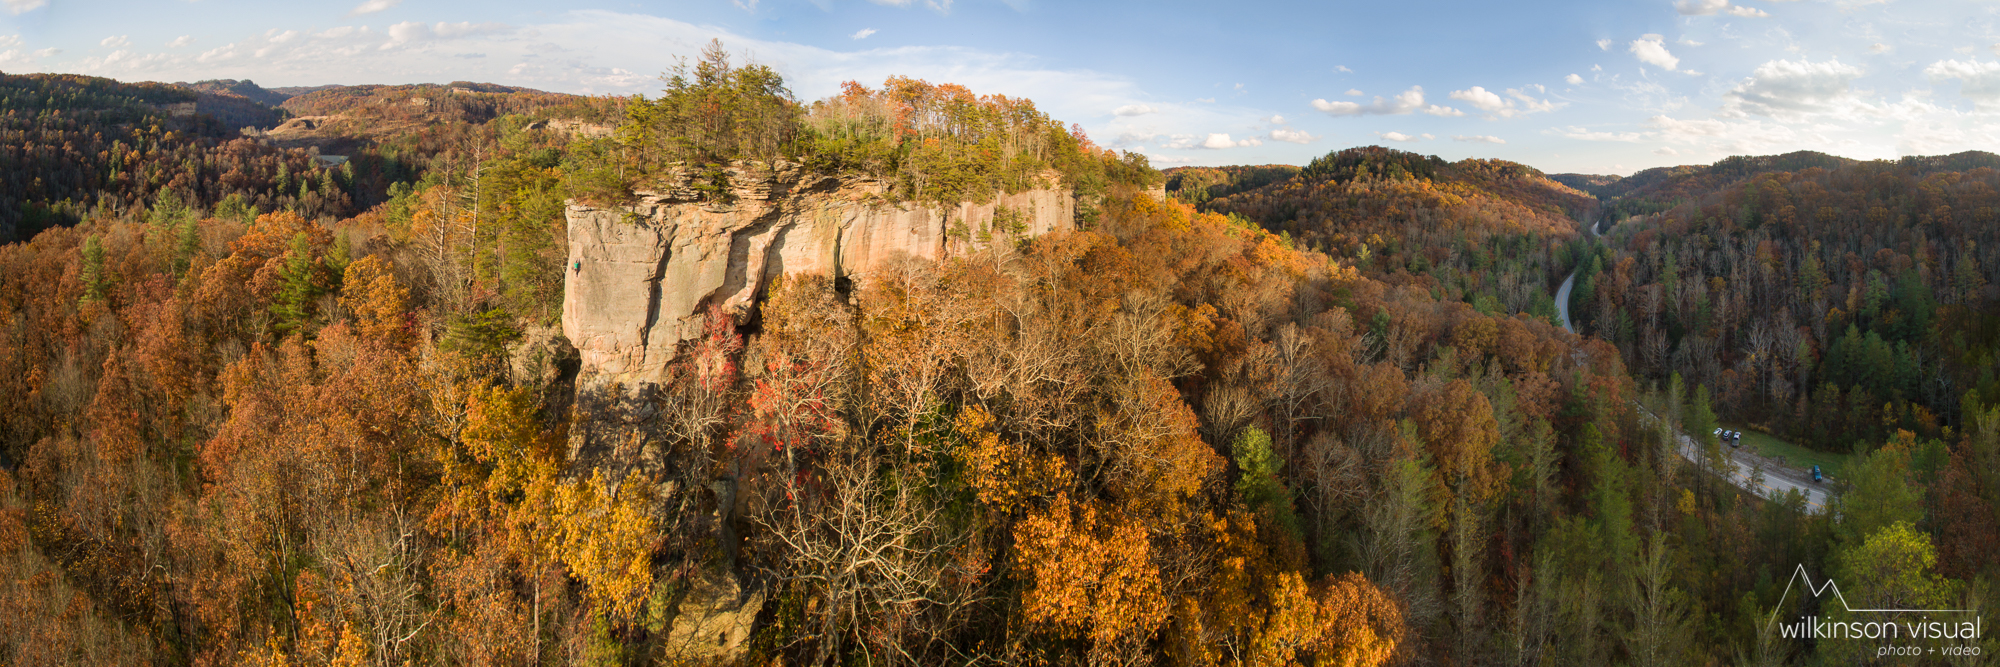 Panoramic photo stitch looking over the Emerald City climbing area in the Red River Gorge. Climber is Matt Hodges.